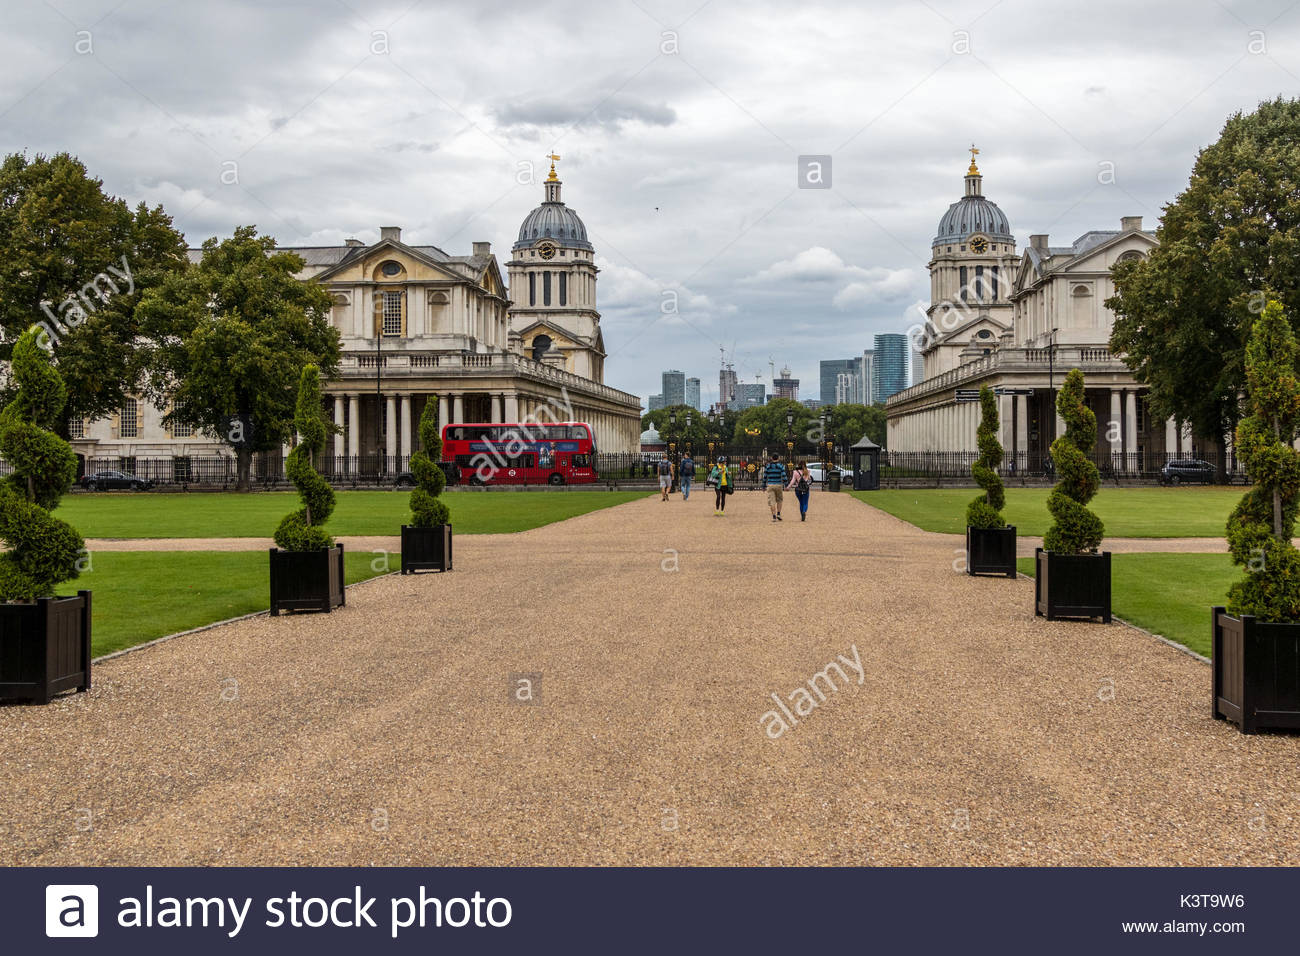 Weather Greenwich Park Stock Photos & Weather Greenwich Park Stock ...